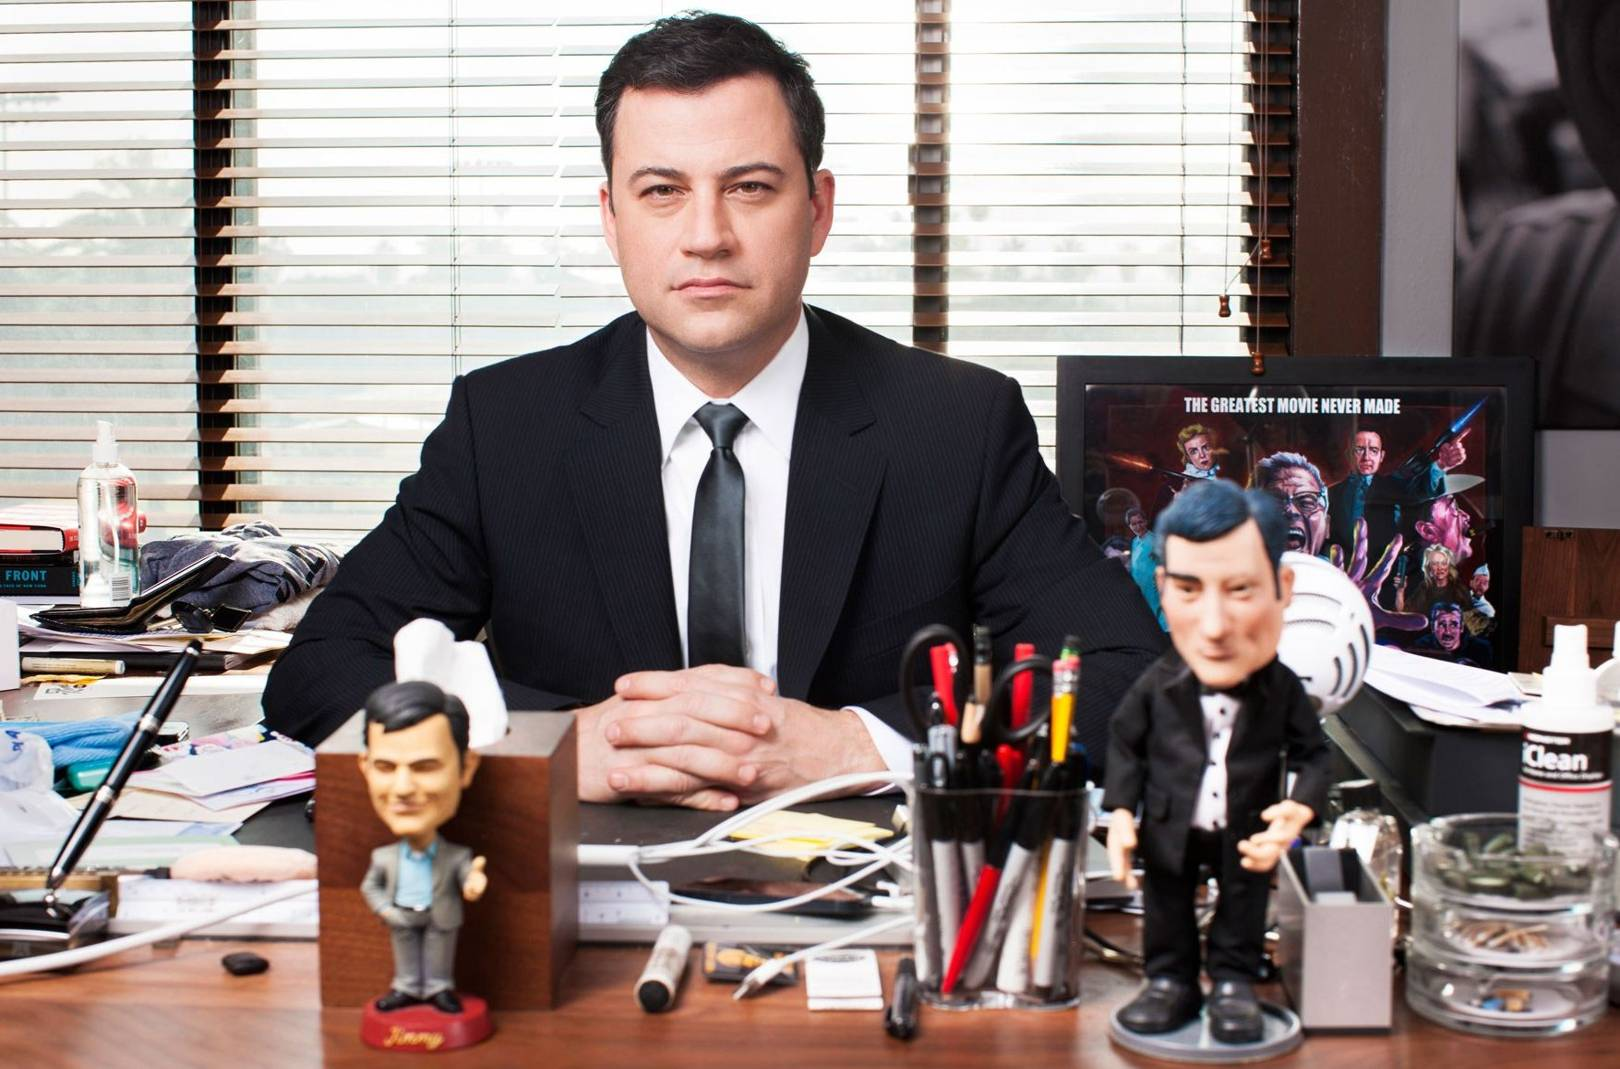 Jimmy Kimmel interview and pictures | British GQ